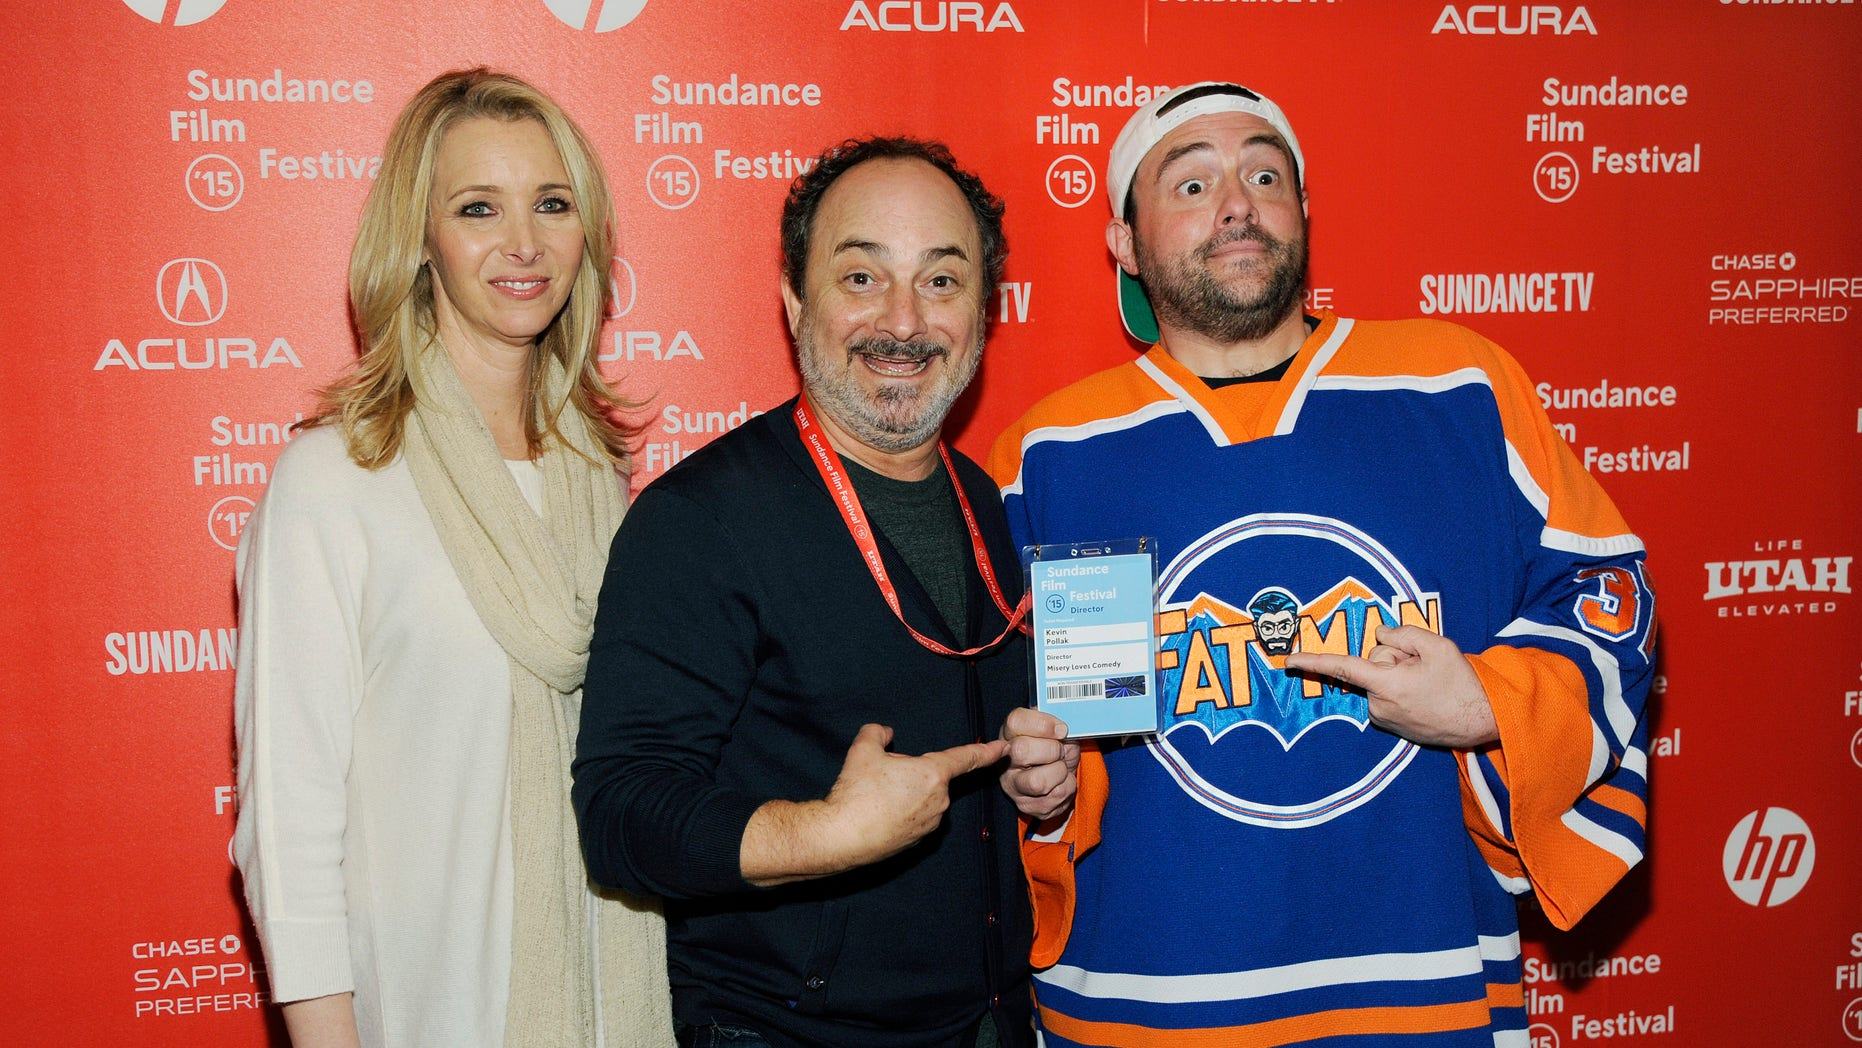 """Jan 22, 2015. Kevin Pollak, director and co-writer of the documentary film """"Misery Loves Comedy,"""" center, poses with cast members Lisa Kudrow, left, and Kevin Smith at the premiere of the film at the Egyptian Theatre at the 2015 Sundance Film Festival in Utah."""